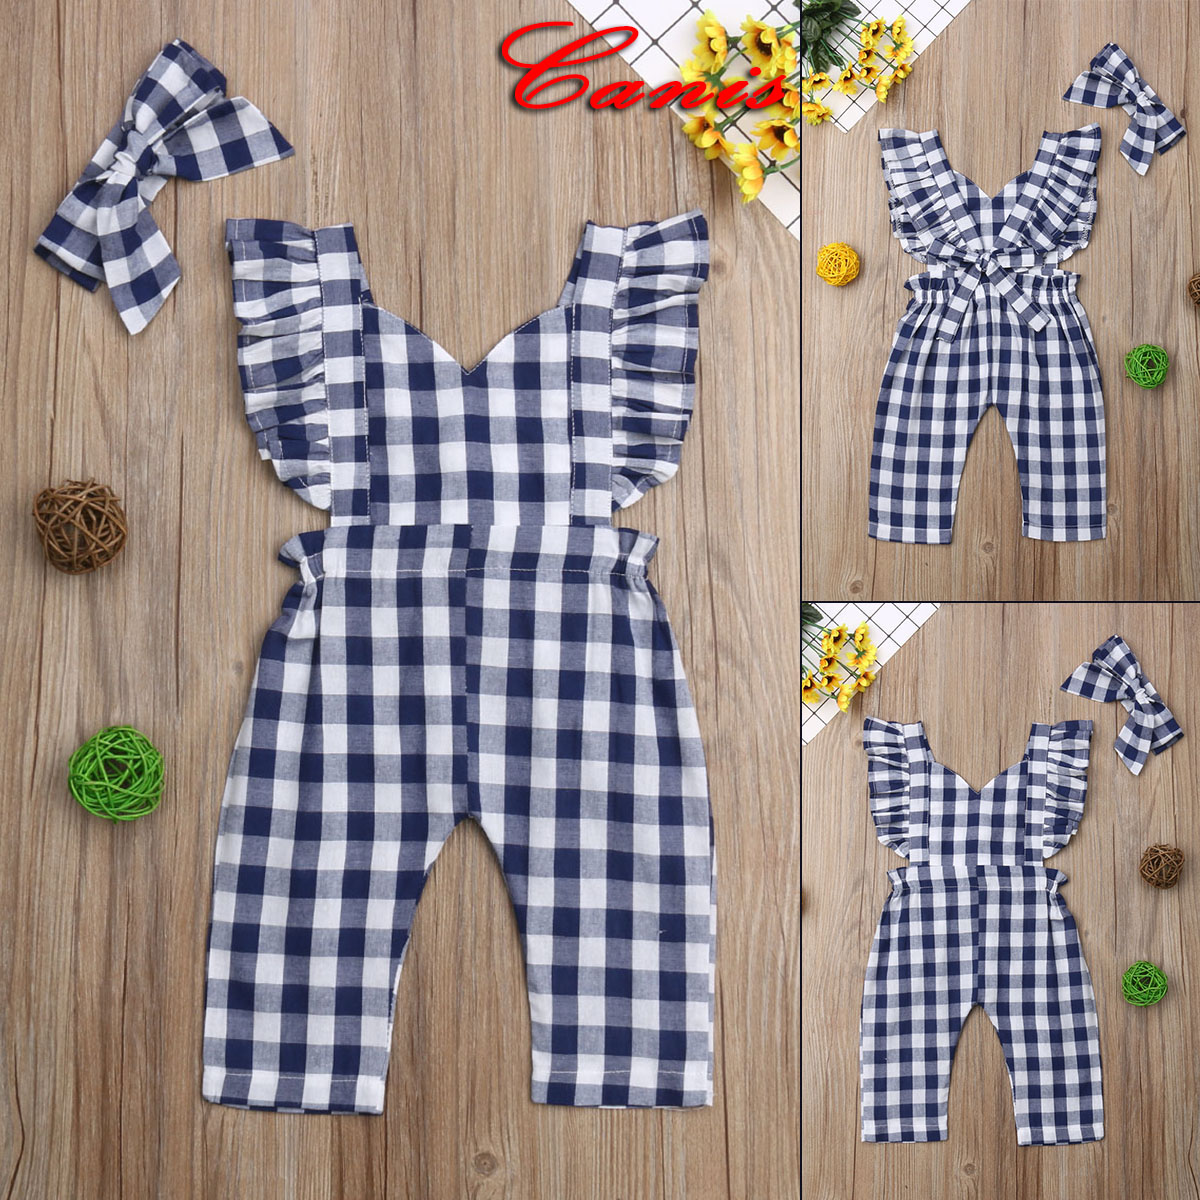 Kids Baby Girls Plaids Bib Pants Romper Jumpsuit Overalls Outfits Clothes 0-3t 100% High Quality Materials Girls' Clothing (newborn-5t) Baby & Toddler Clothing